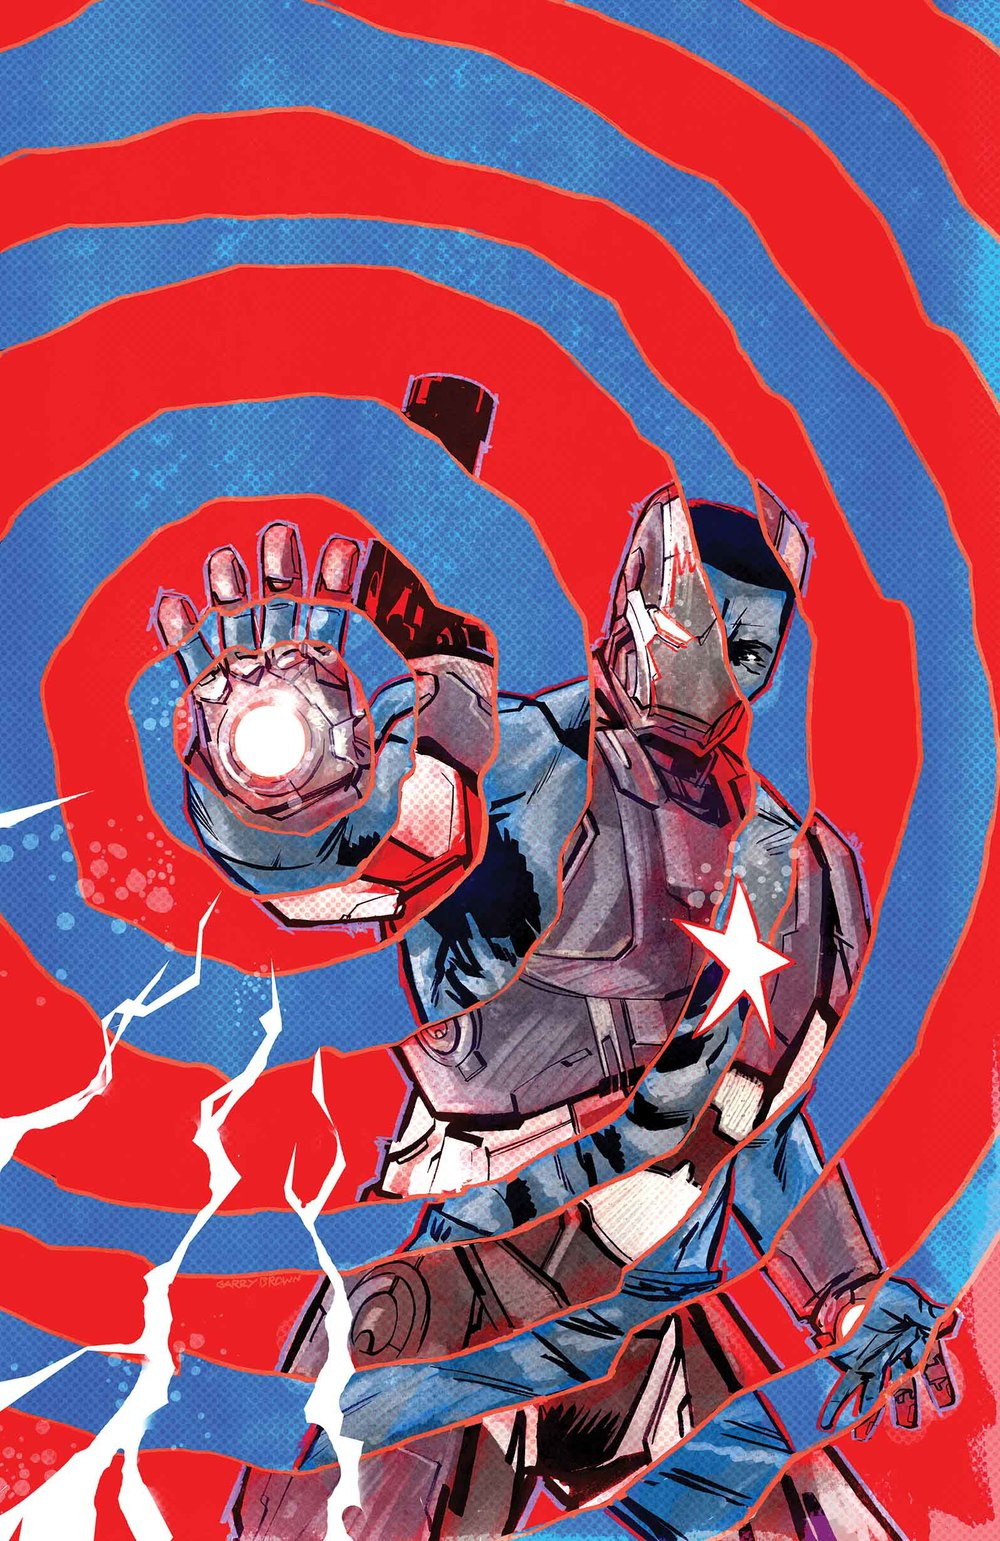 Iron-Patriot-1-Cover-d97f3.jpg